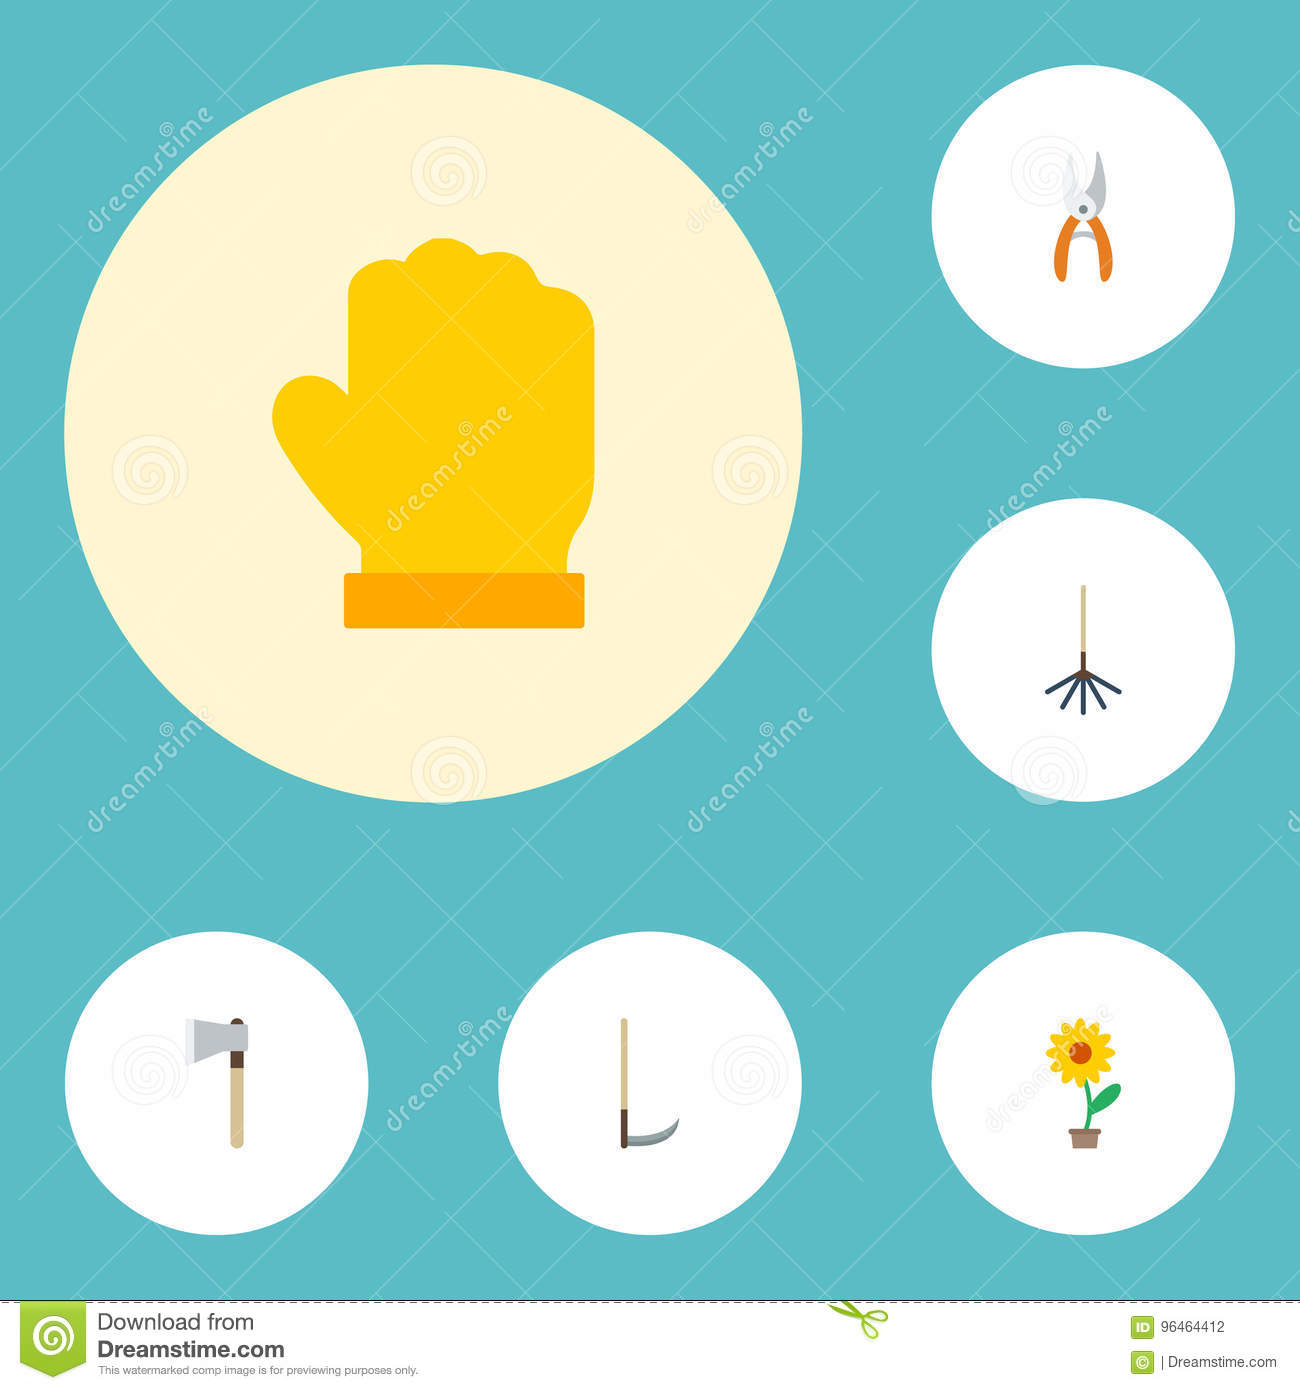 Flat Icons Axe Flowerpot Latex And Other Vector Elements Set Of